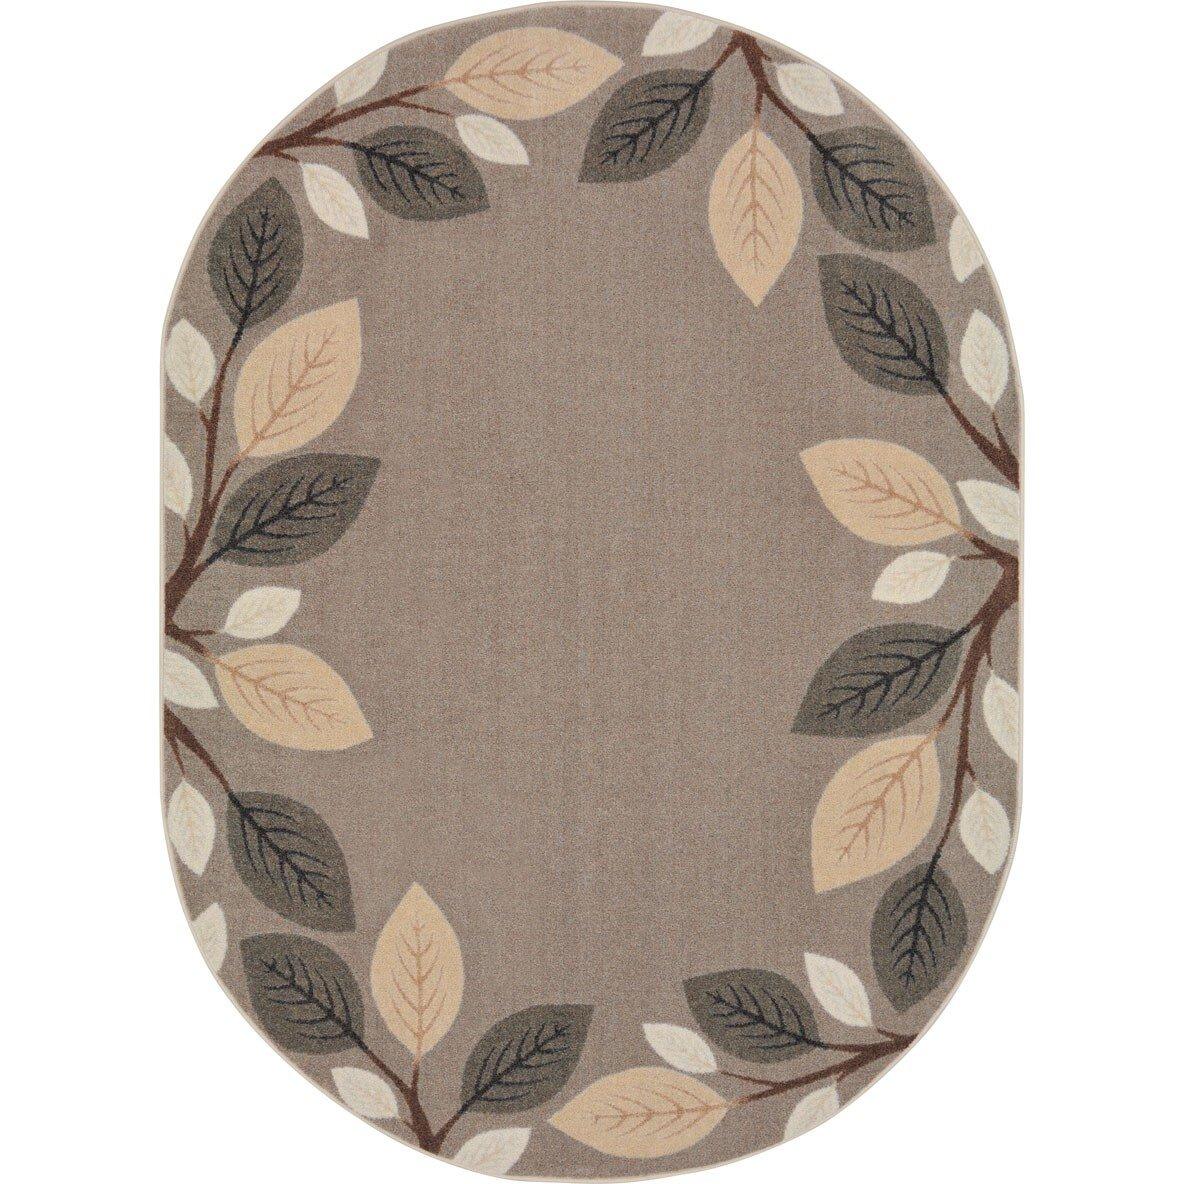 Abstract Joy Carpets Area Rugs You Ll Love In 2021 Wayfair